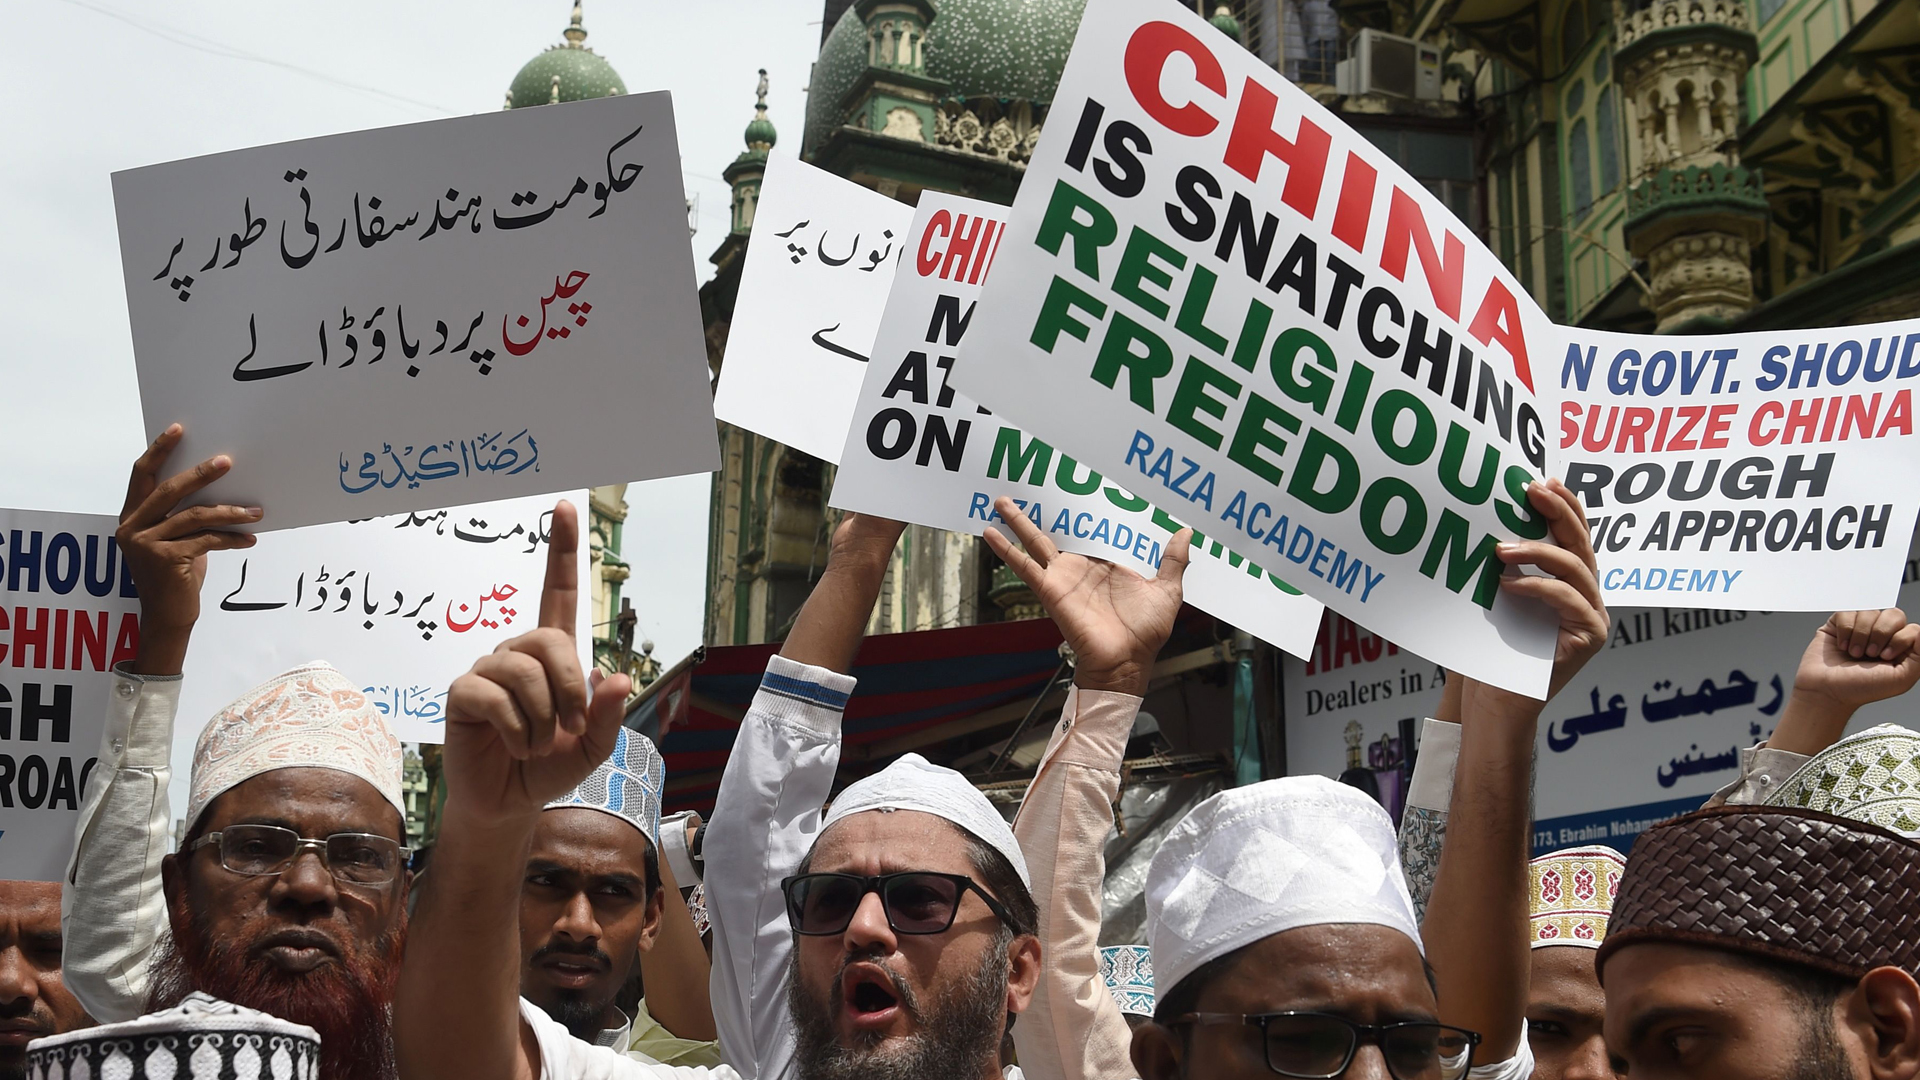 Indian Muslims hold signs during a protest against the Chinese government over the detention of Muslim minorities in Xinjiang, in Mumbai on Sept. 14, 2018. (Credit: PUNIT PARANJPE/AFP/Getty Images)